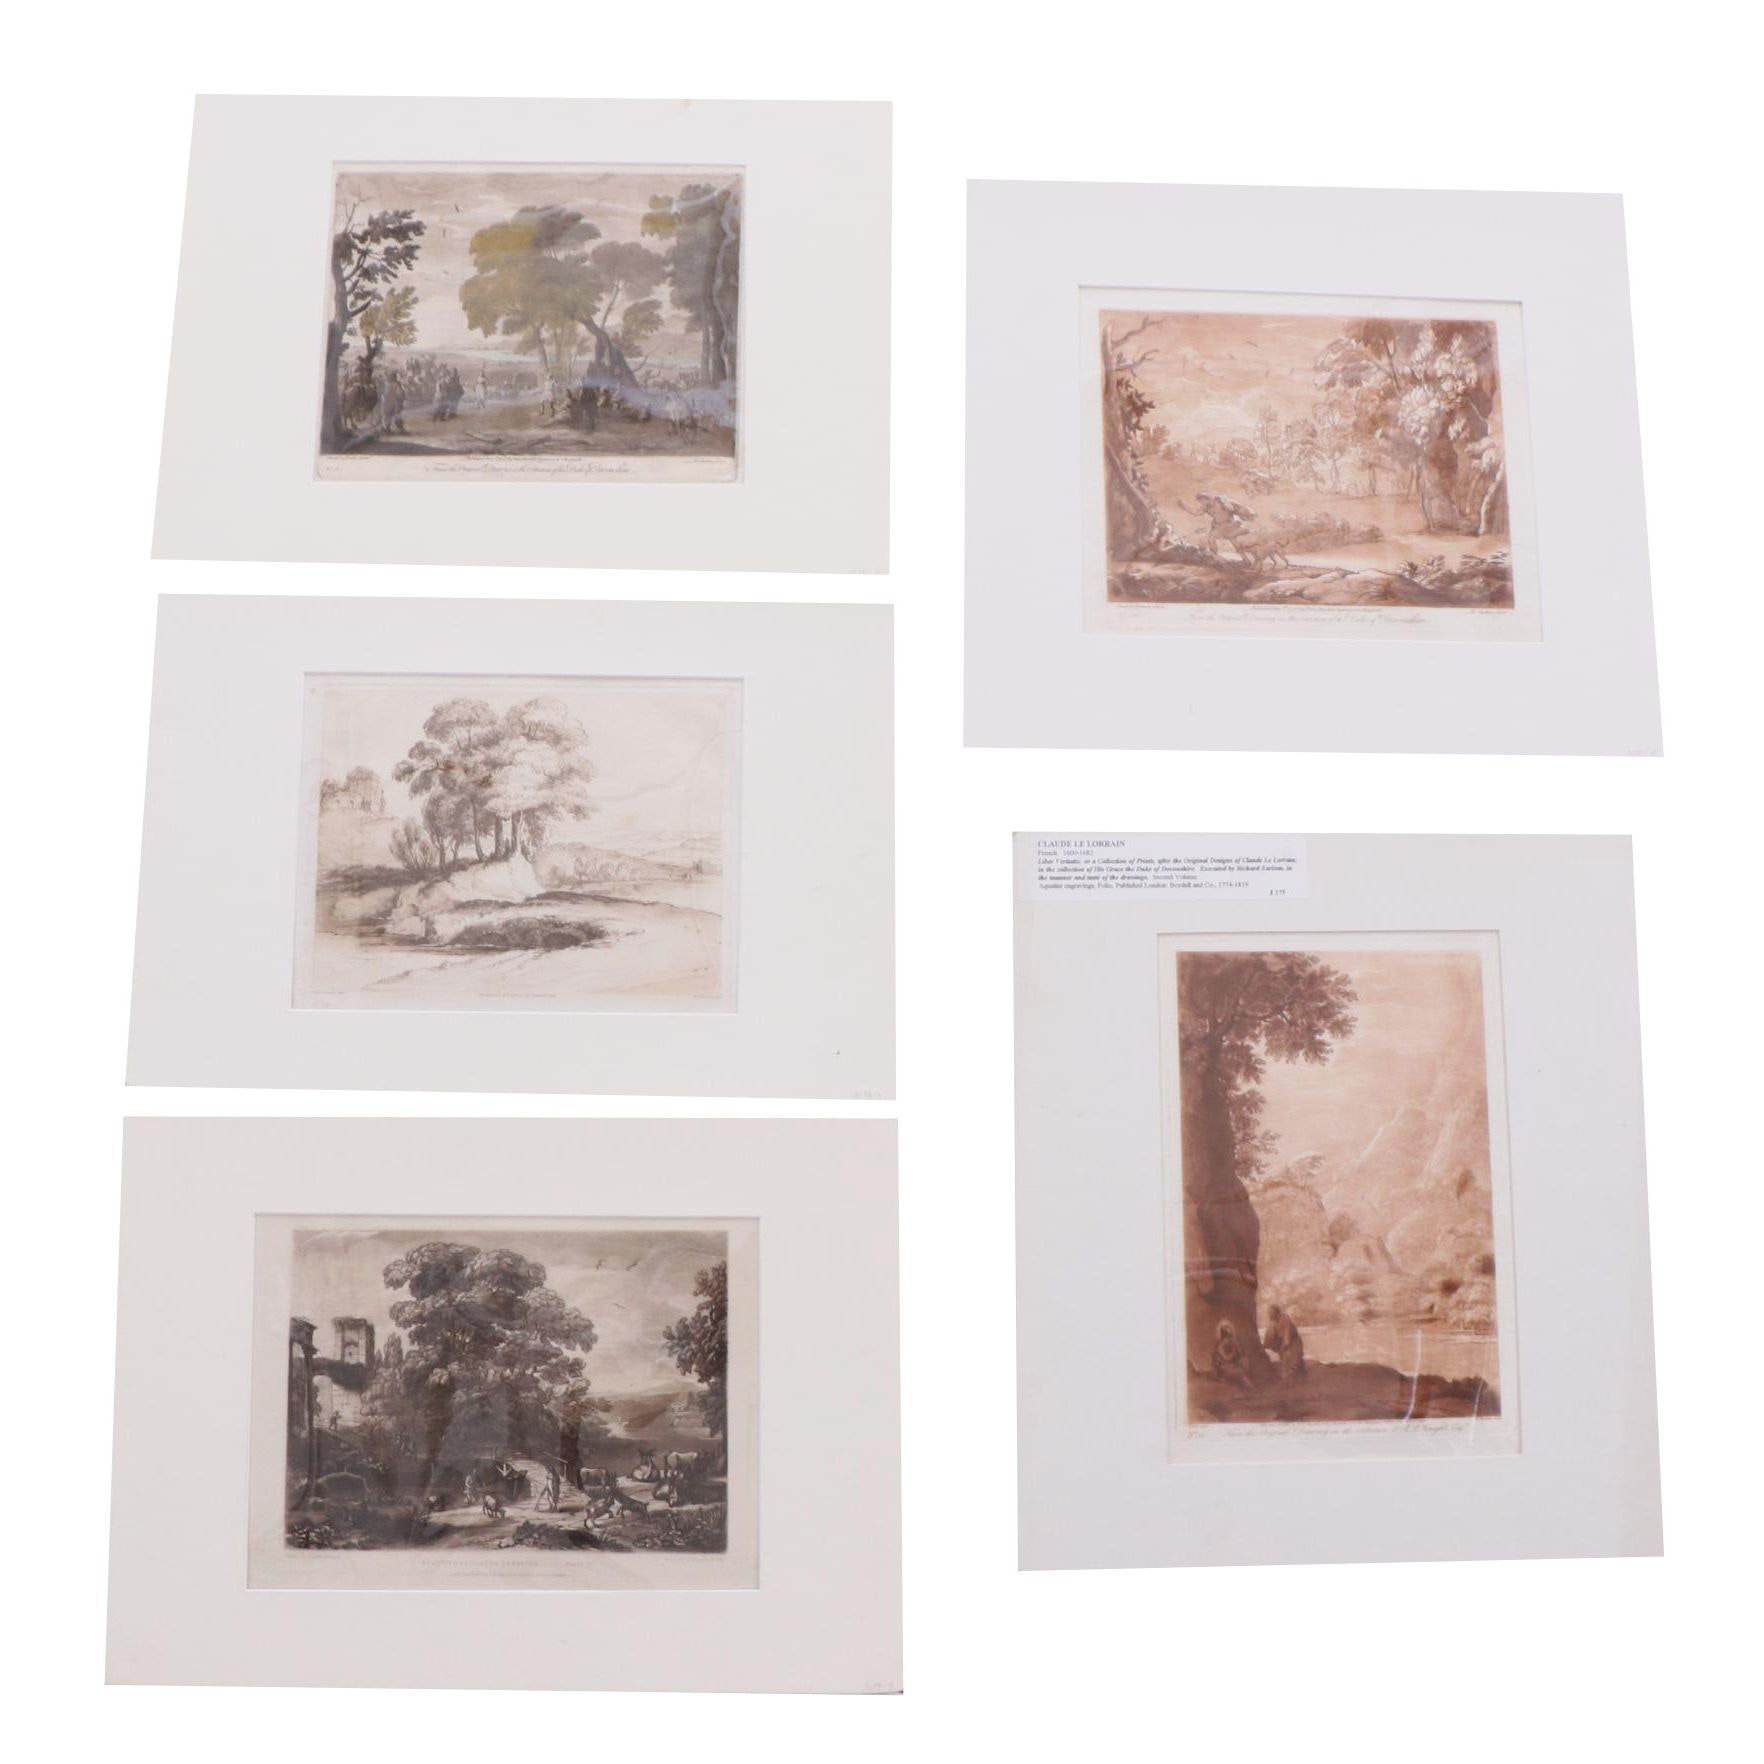 Collection of Etchings and Engravings after Claude Lorrain